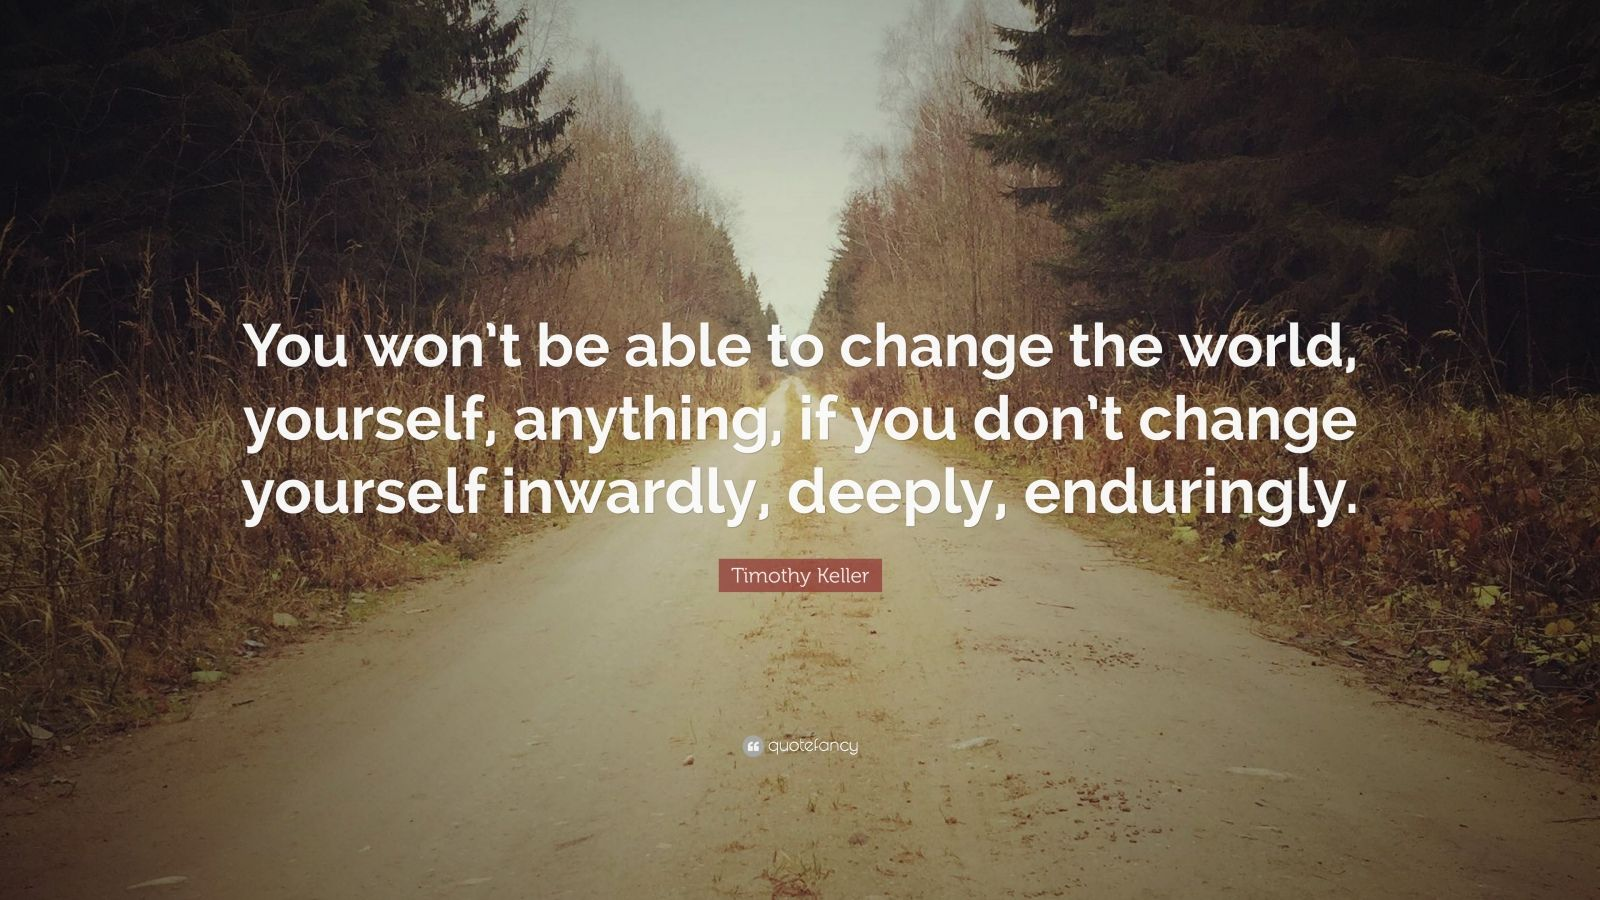 """Timothy Keller Quote: """"You won't be able to change the world, yourself, anything, if you don't change yourself inwardly, deeply, enduringly."""""""